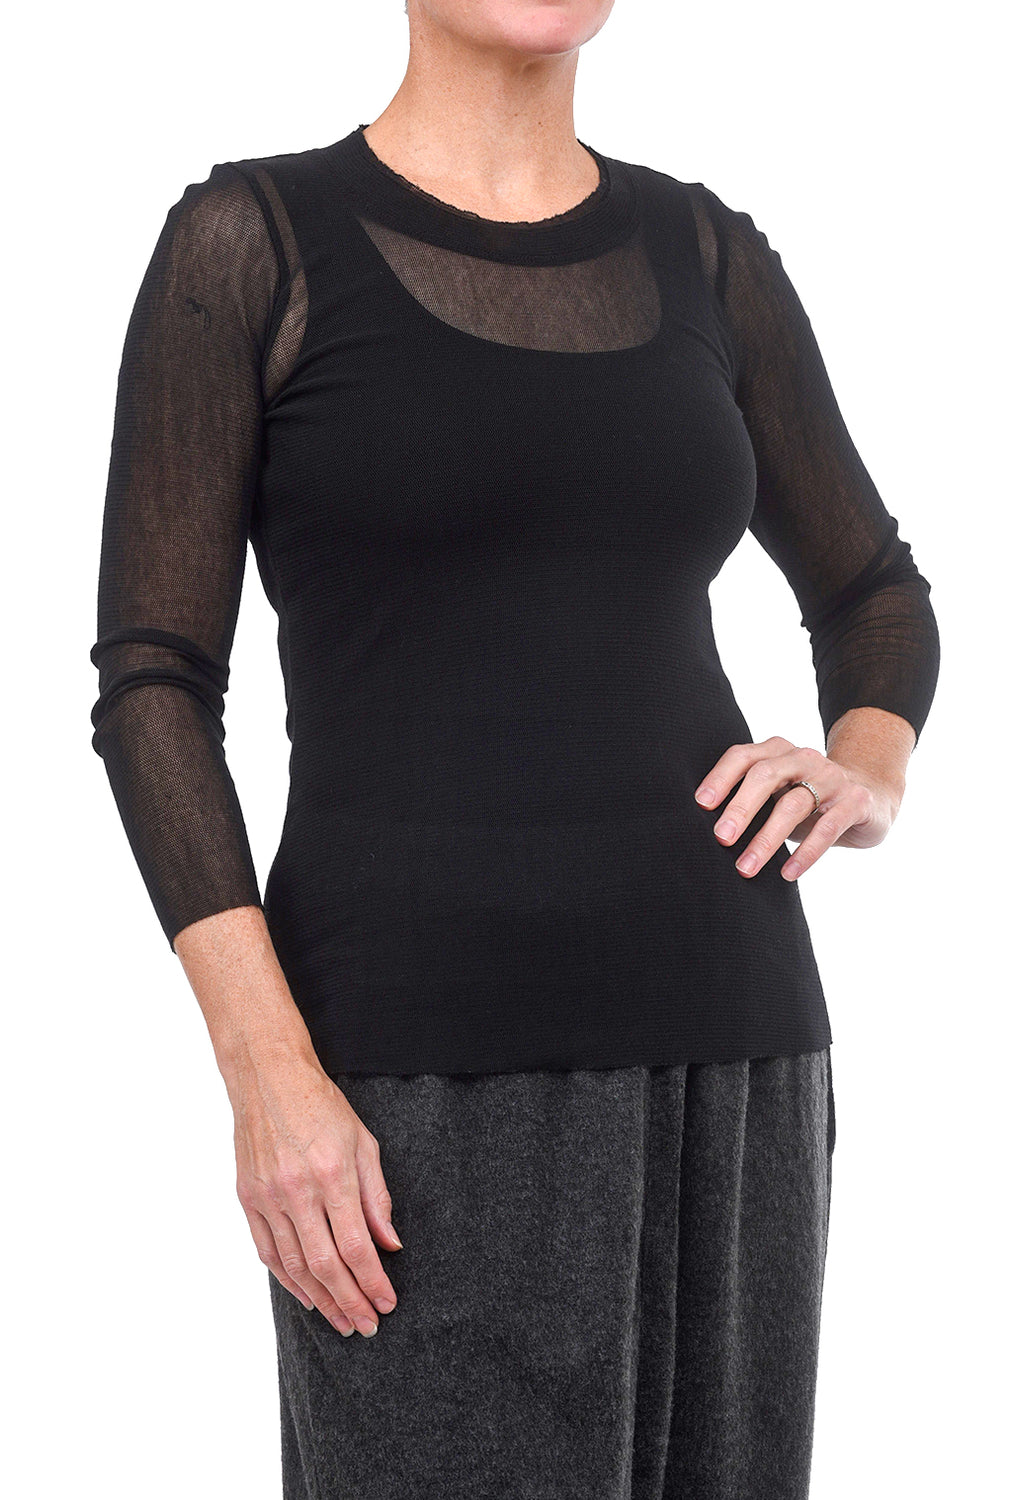 Cynthia Ashby CA Longer Mesh Tee, Black